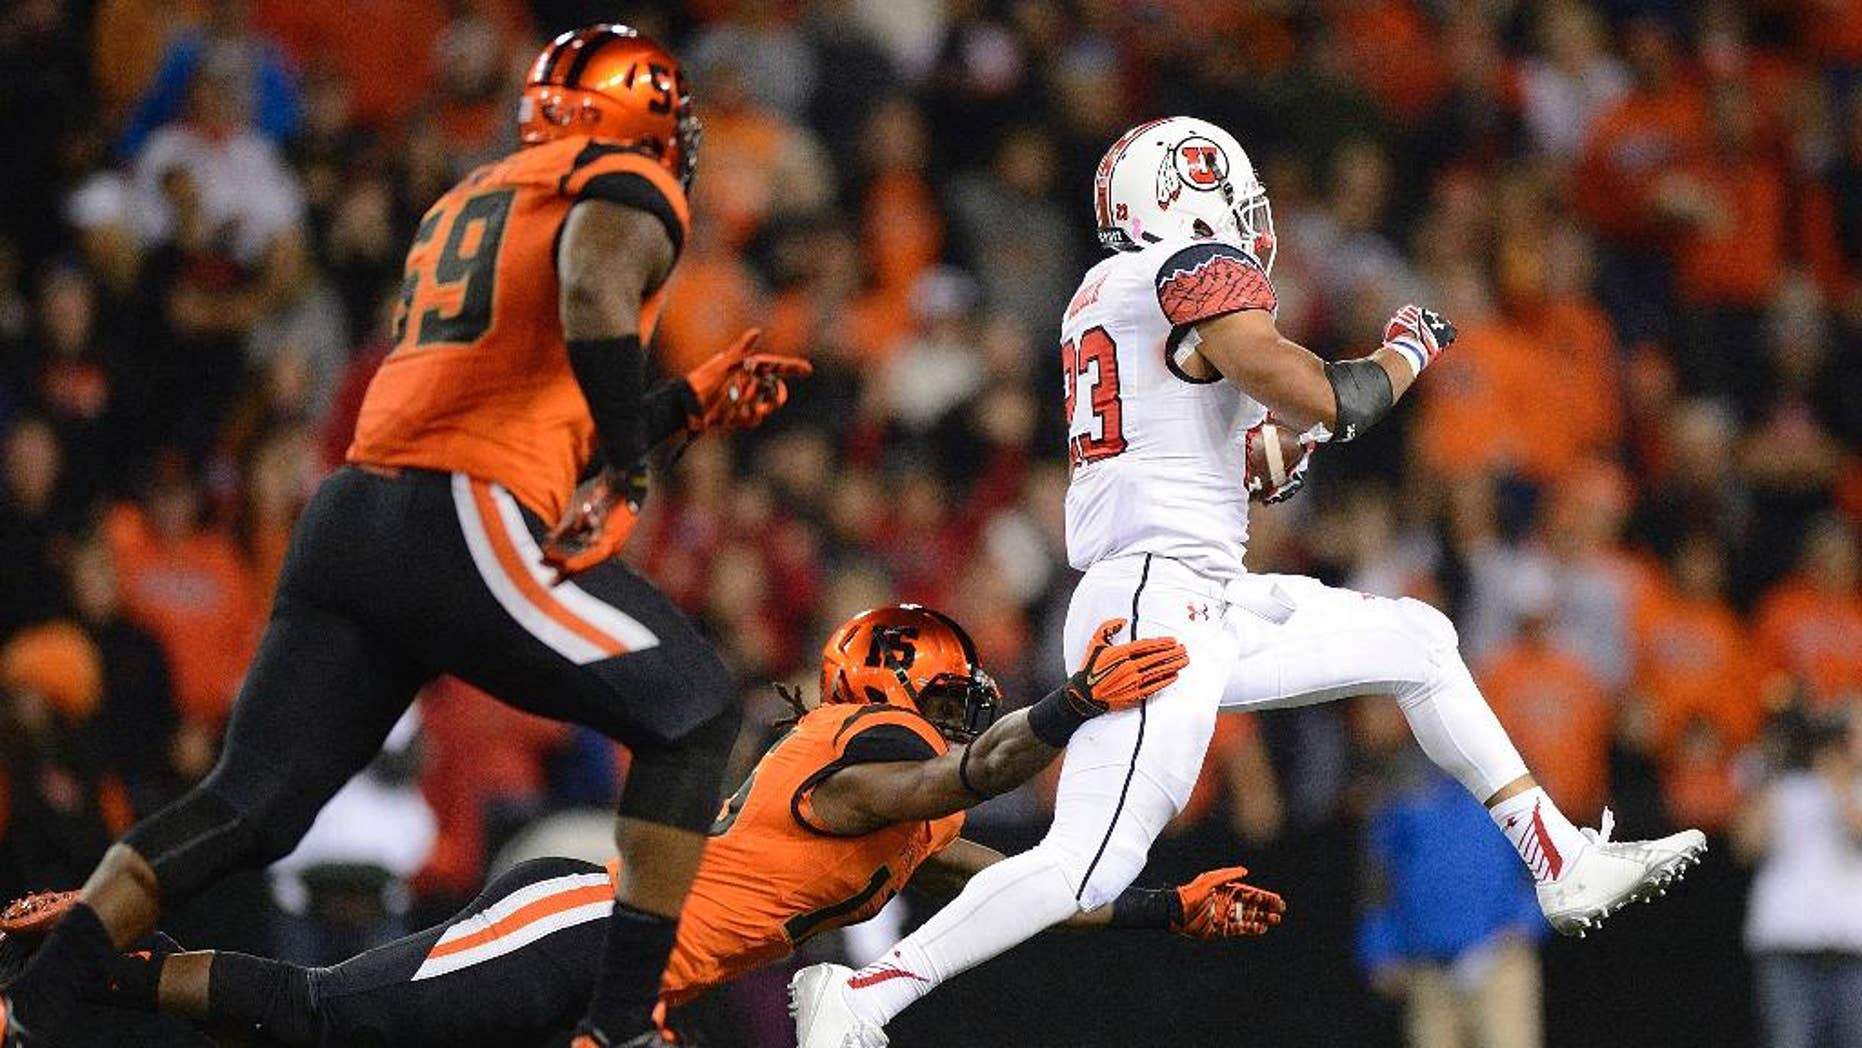 University of Utah running back Devontae Booker (23) breaks away from Oregon State defender Larry Scott (15) during an NCAA college football game in Corvallis, Ore., Thursday, Oct.. 16, 2014. The University of Utah beat Oregon State 29-23 in overtime. (AP Photo/Troy Wayrynen)